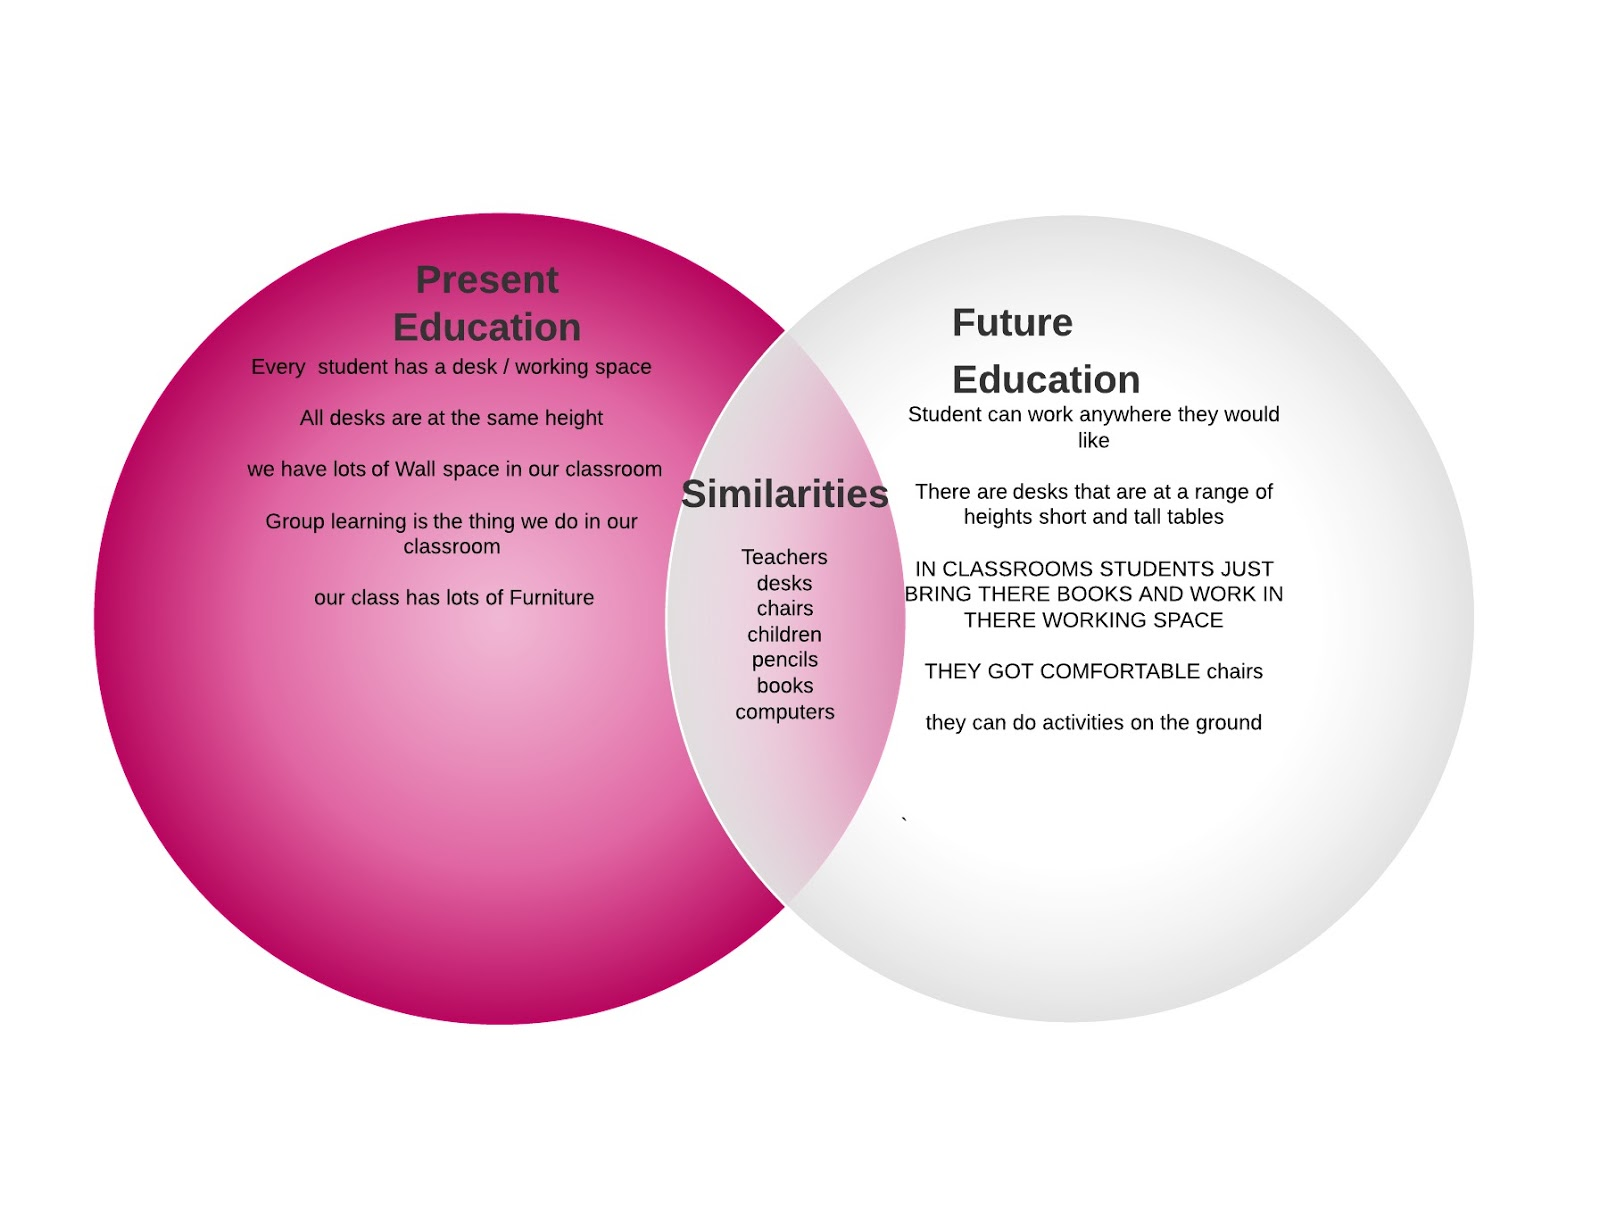 Room 7 is Heaven 2014: Comparing Education in the Present